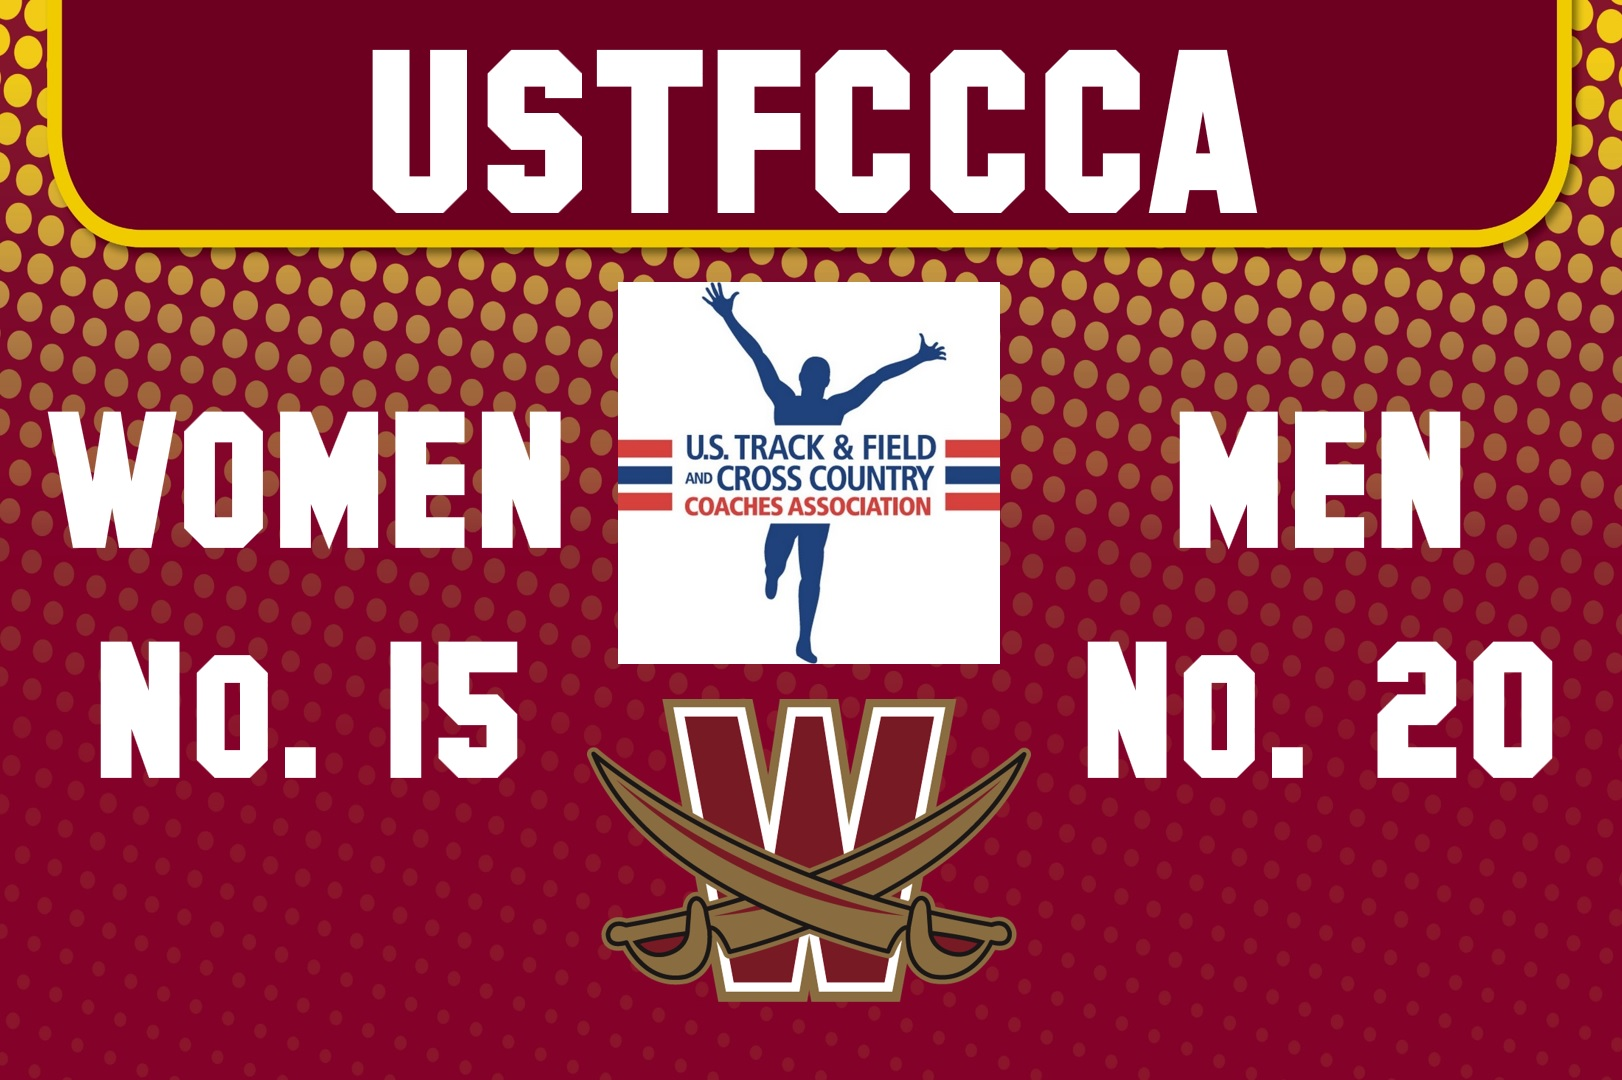 Women Up to 15, Men Remain in Top 20 Nationally